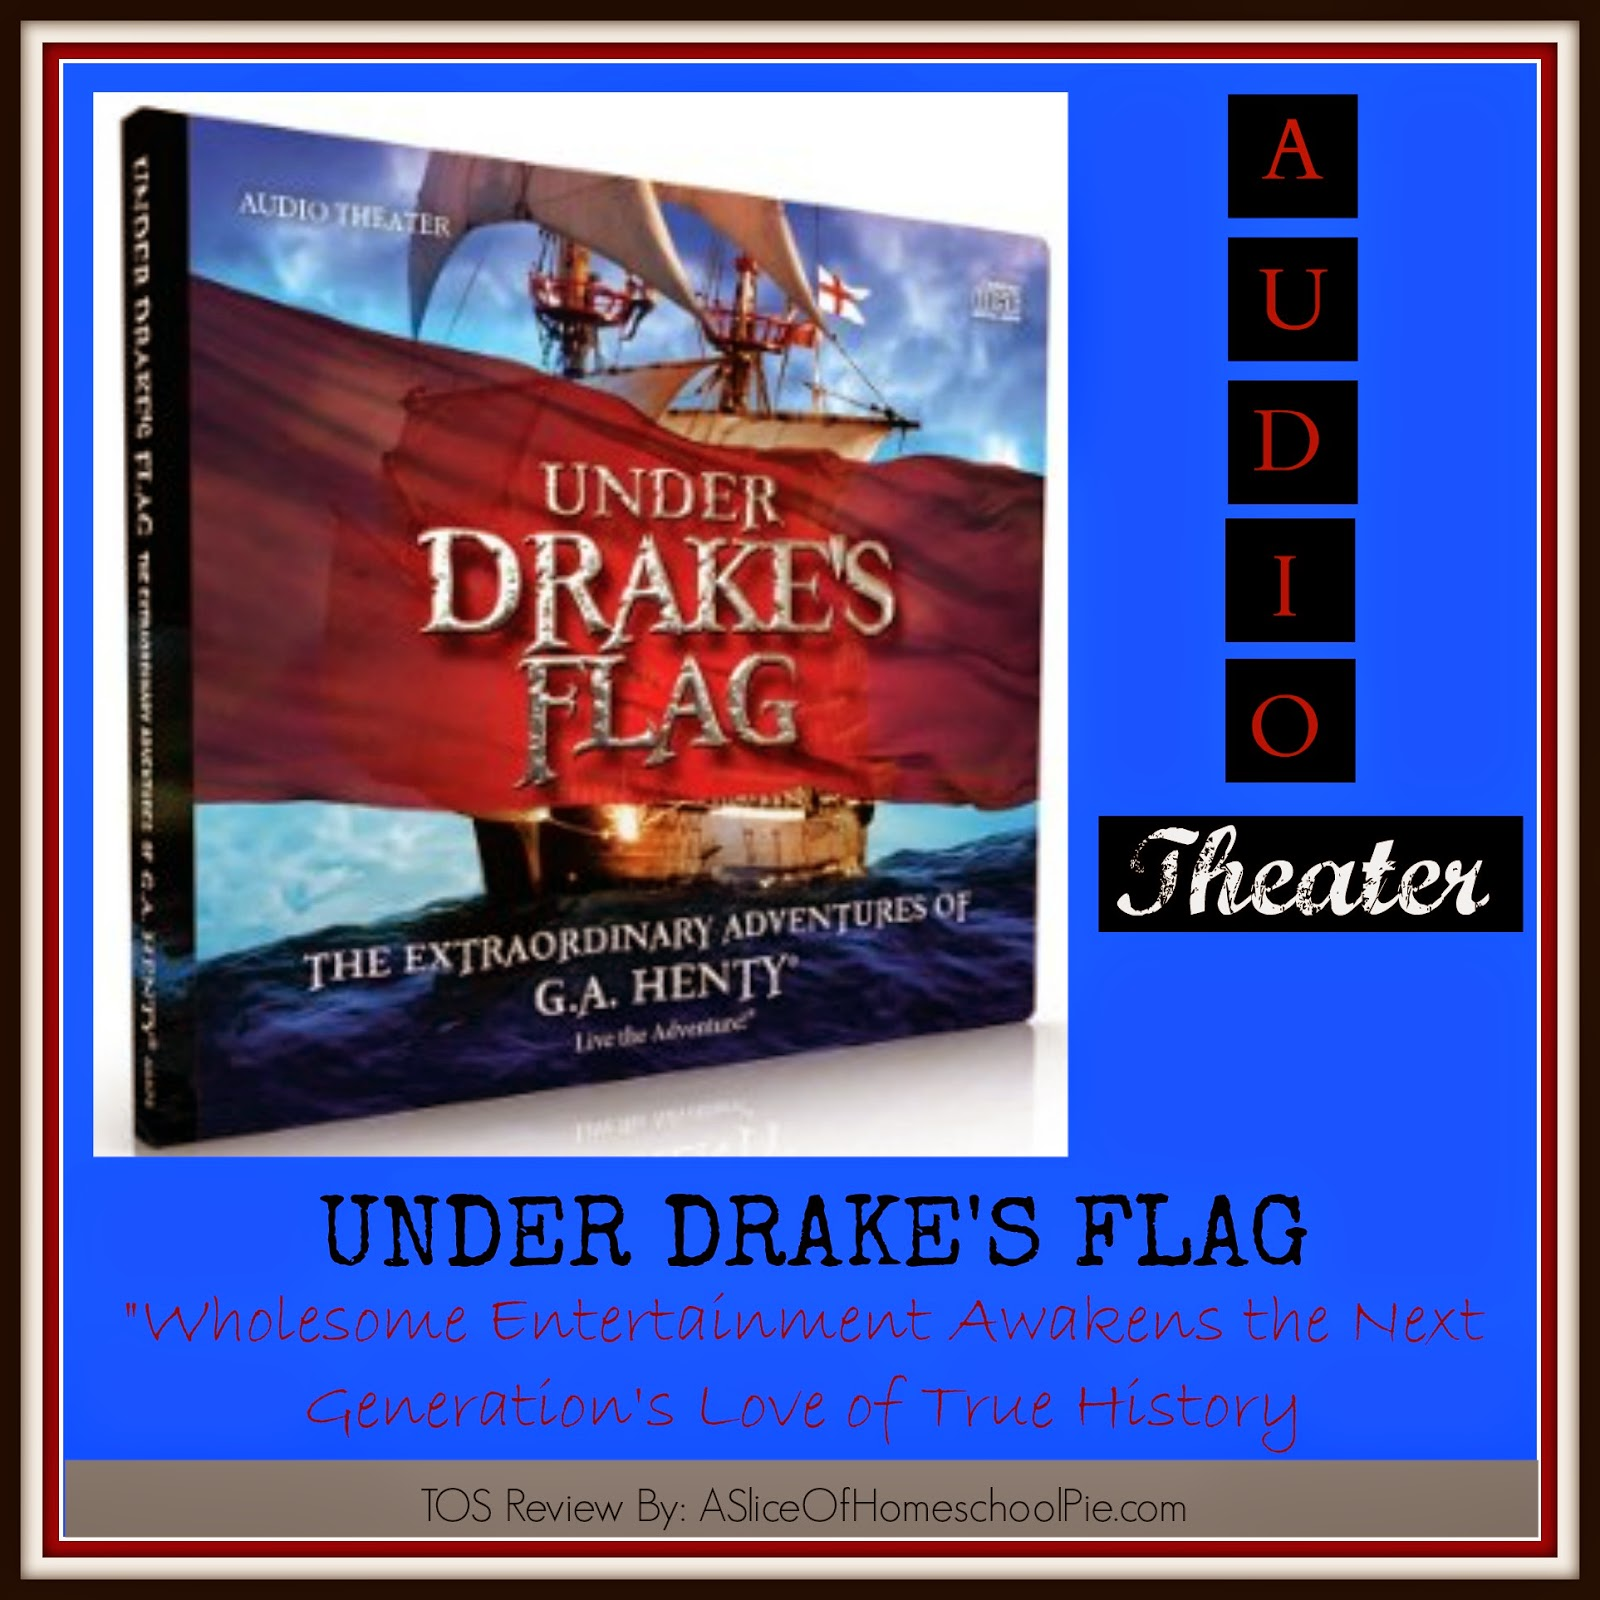 Under Drake's Flag (Audio Theater) Review by ASliceOfHomeschoolPie.com